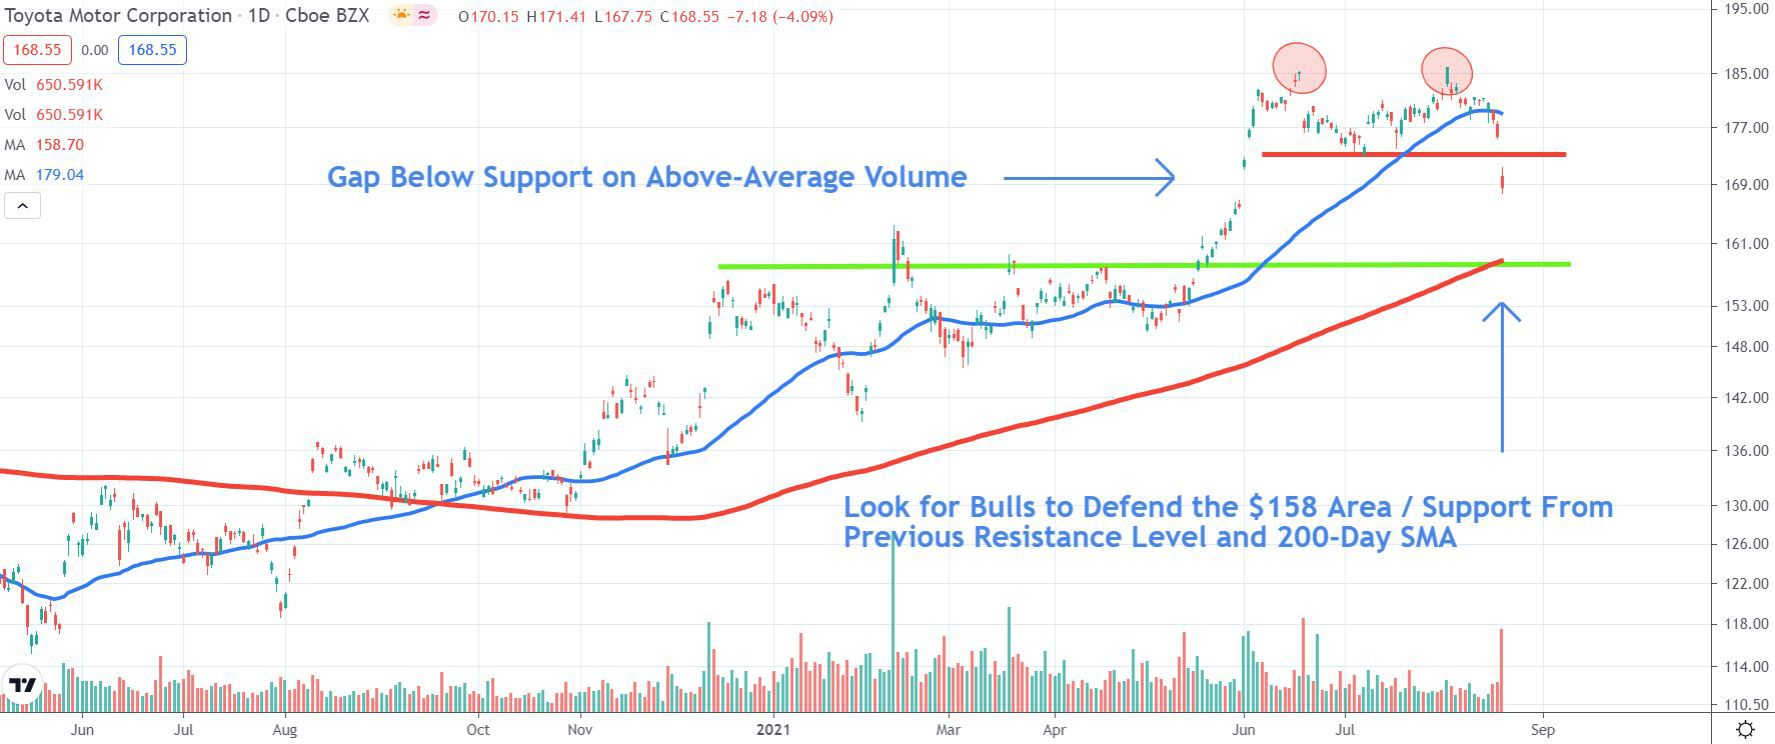 Chart depicting the share price of Toyota Motor Corporation (TM)